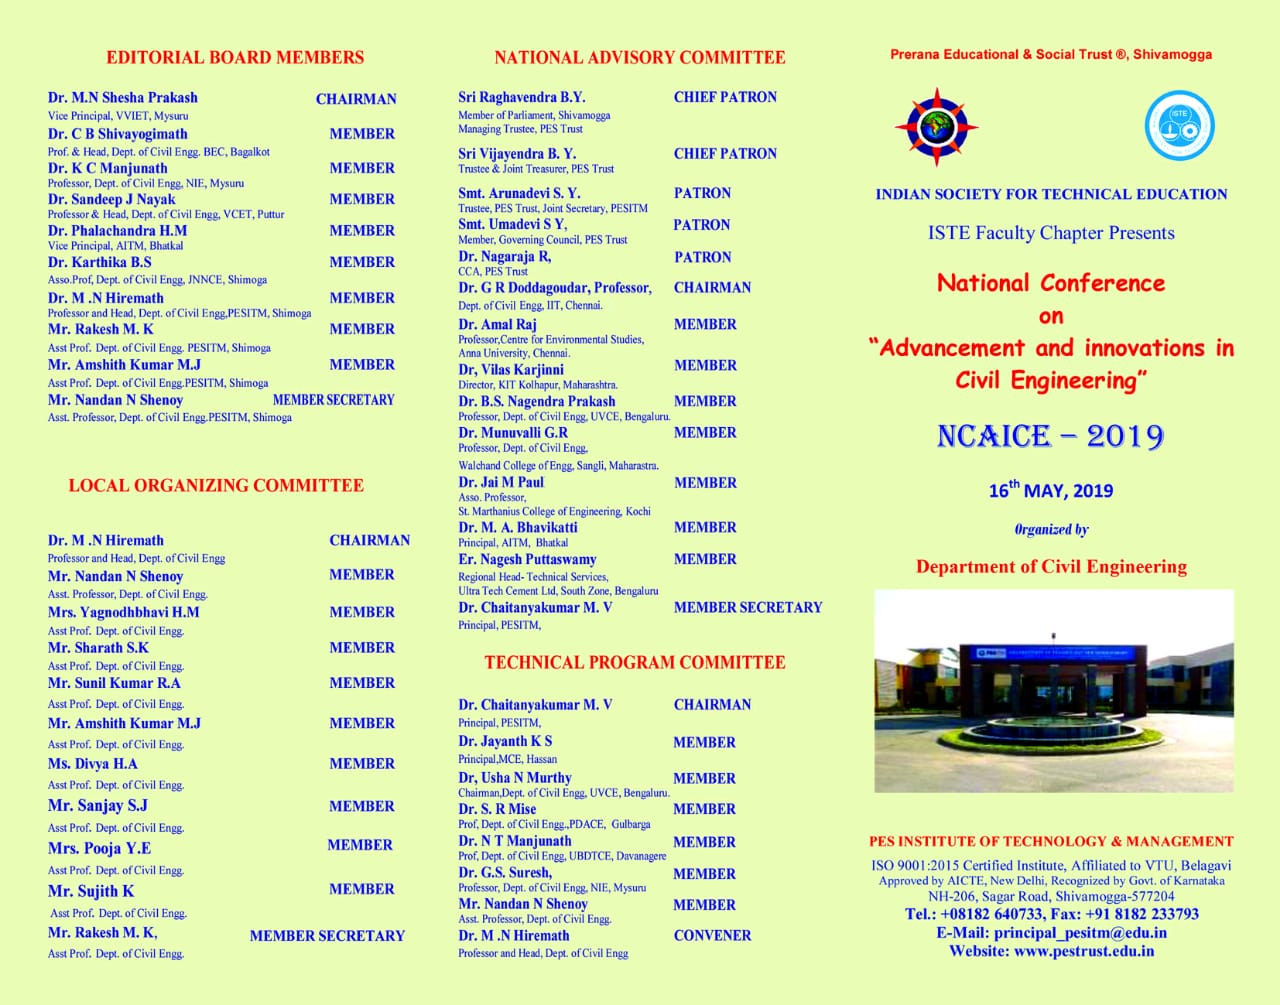 National Conference on Advancement and Innovations in Civil Engineering